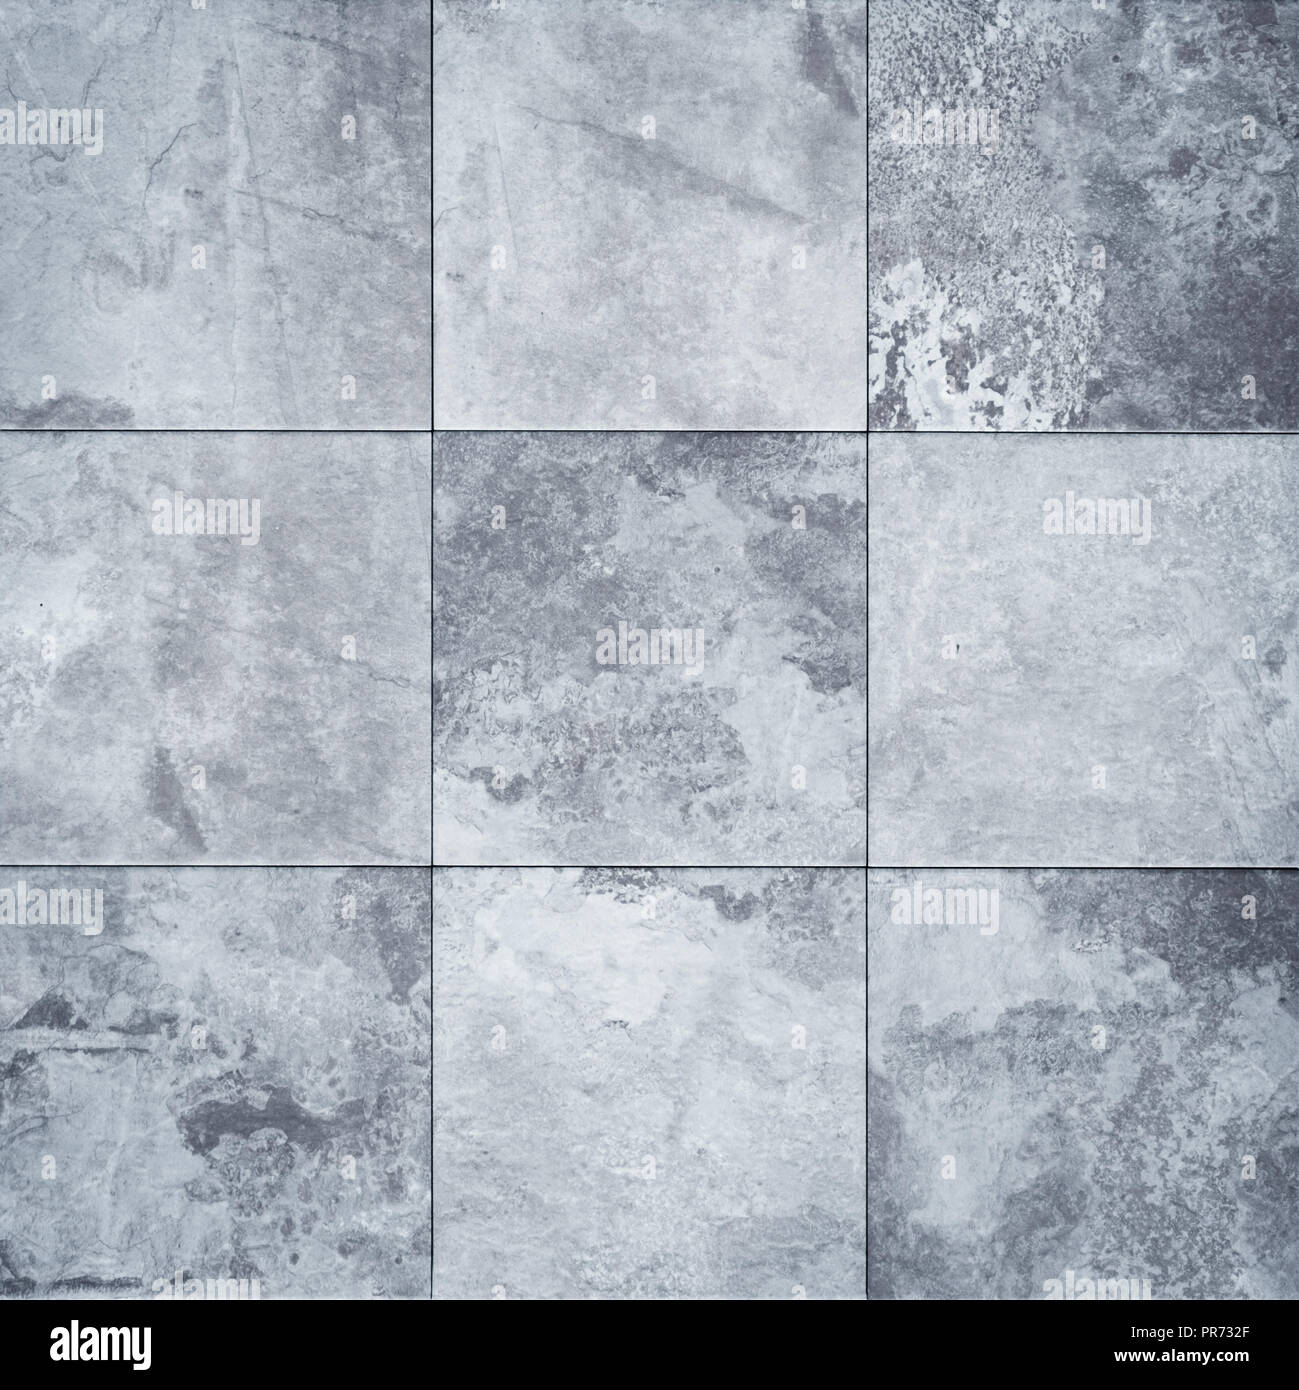 patchwork tile with stone texture - tiled background Stock Photo